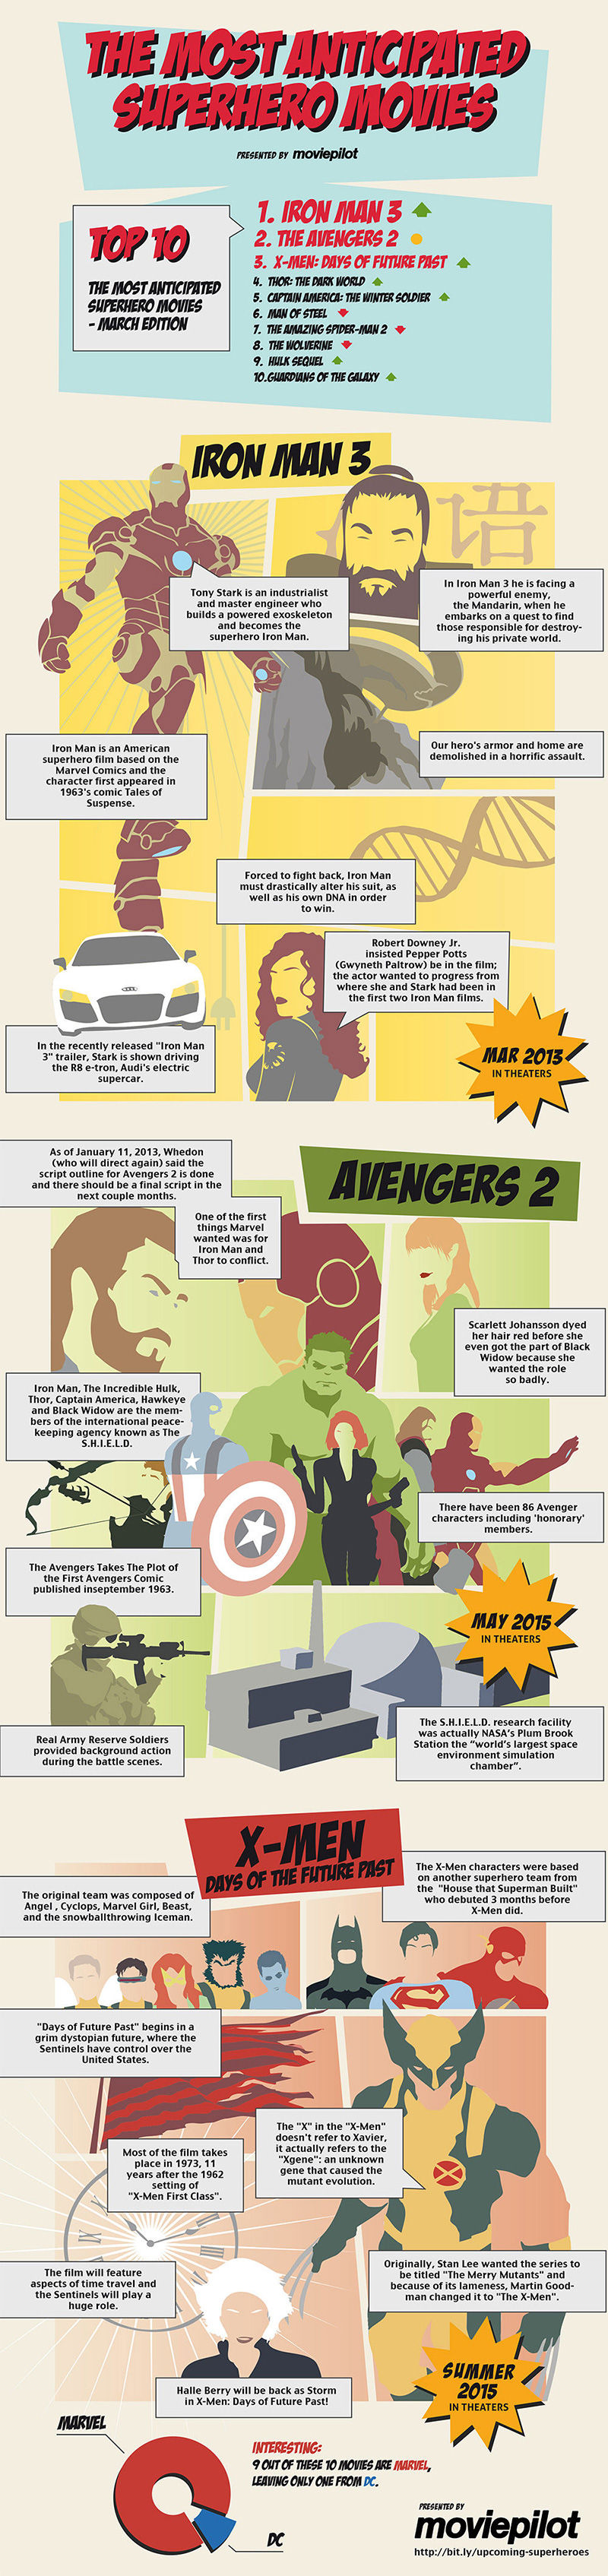 The Most Anticipated Superhero Movies Of 2013 (Infographic) | Business 2 Community